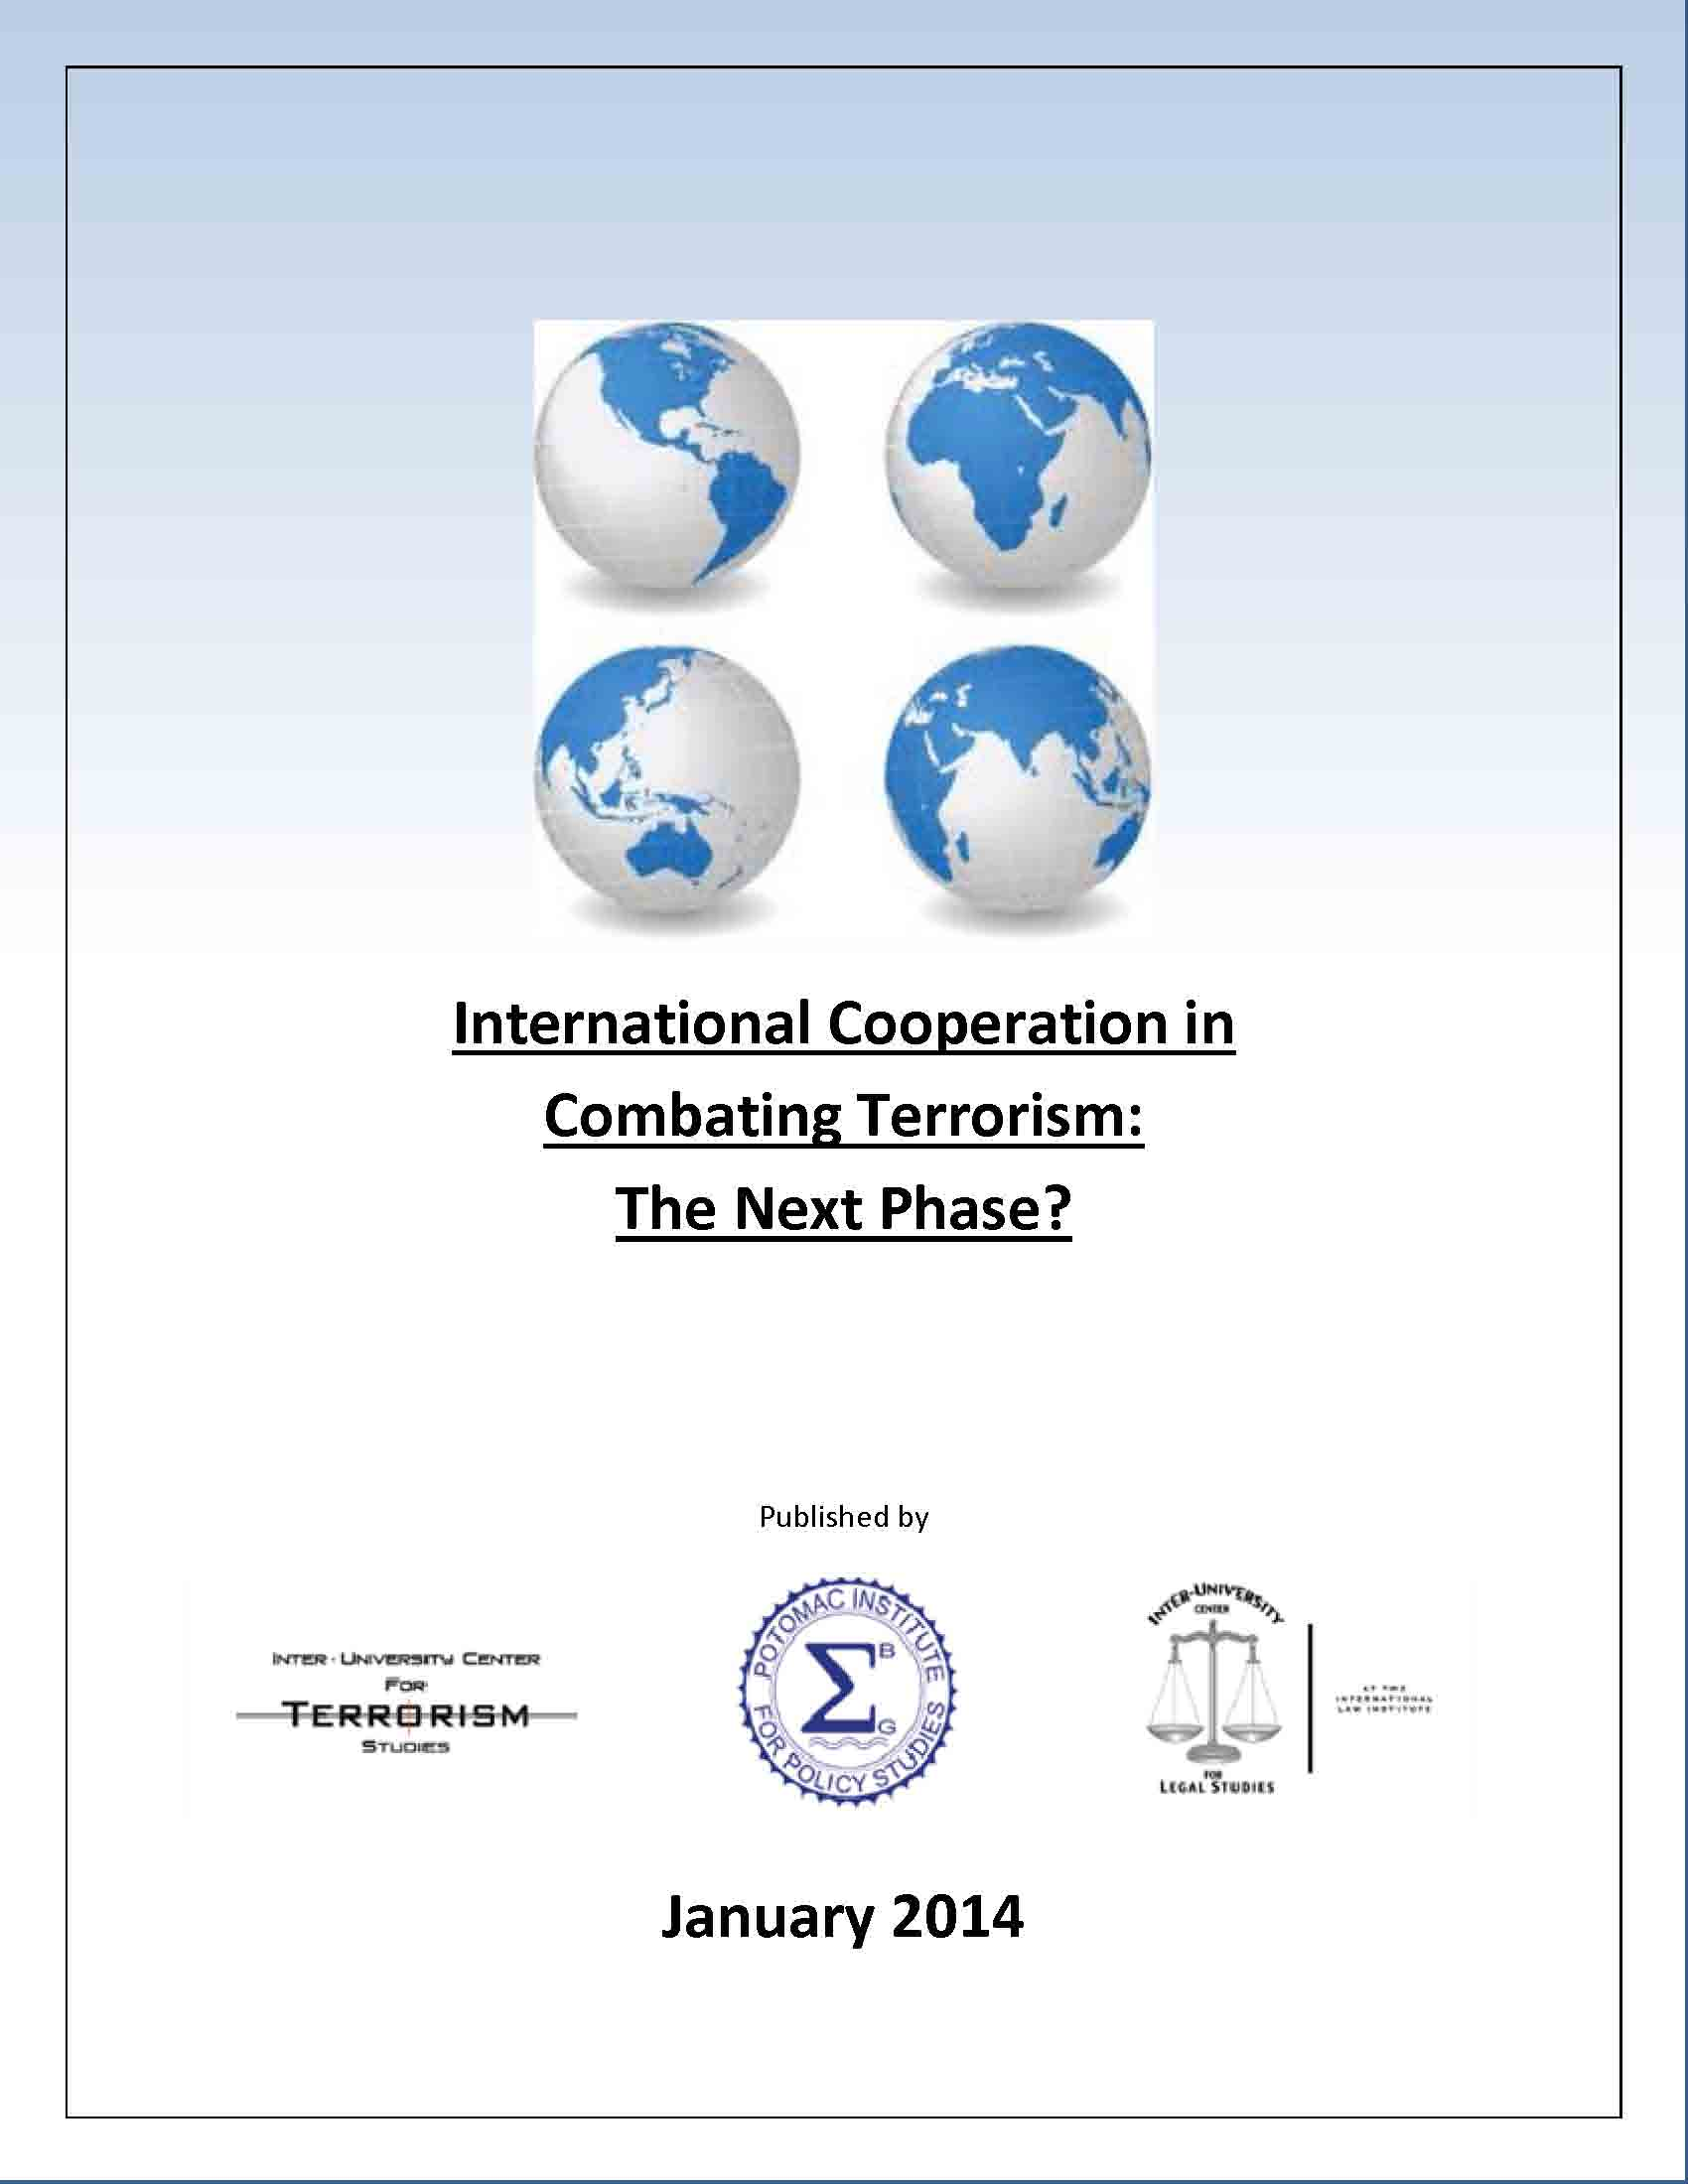 International Cooperation in Combating Terrorism: The Next Phase?